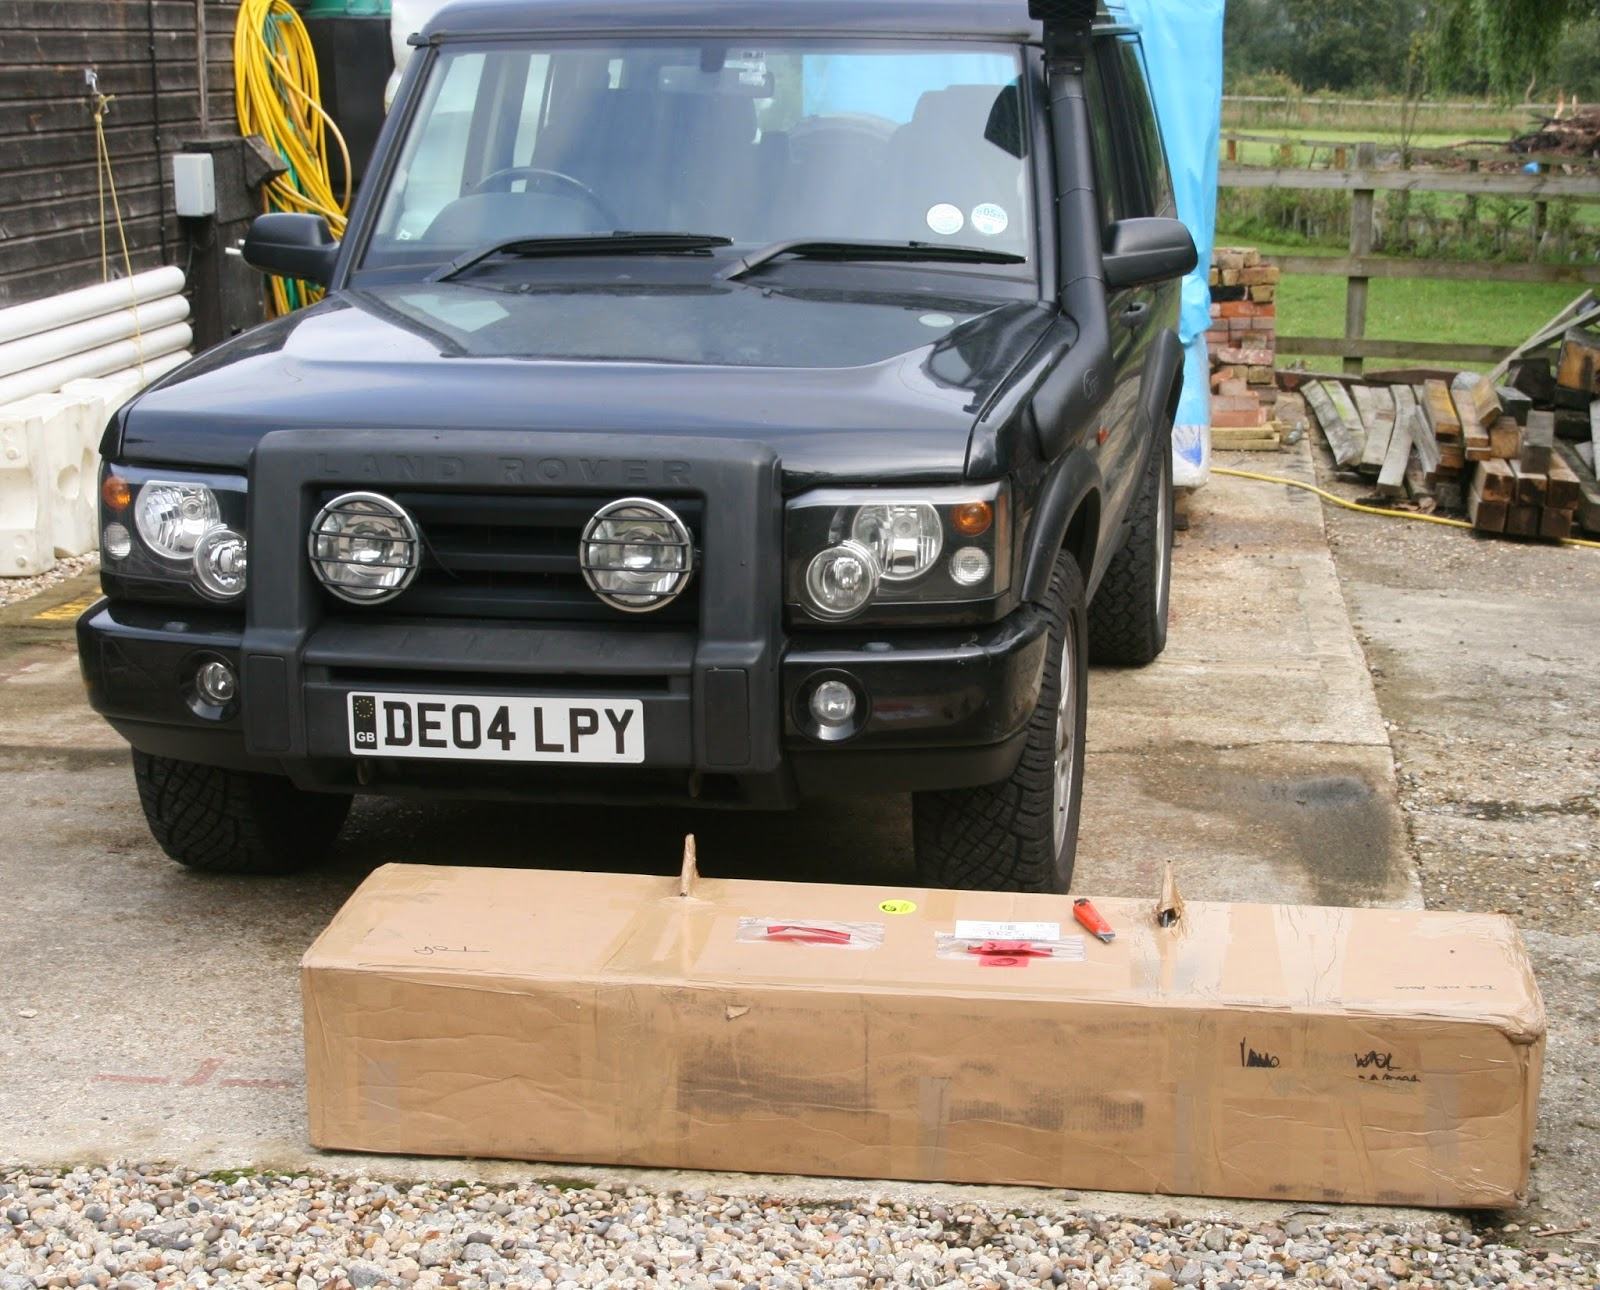 solid into at the discovery ii built light bars shot bumper tube last emu man land a am front landrover screen look rover dust runners ome old lifted